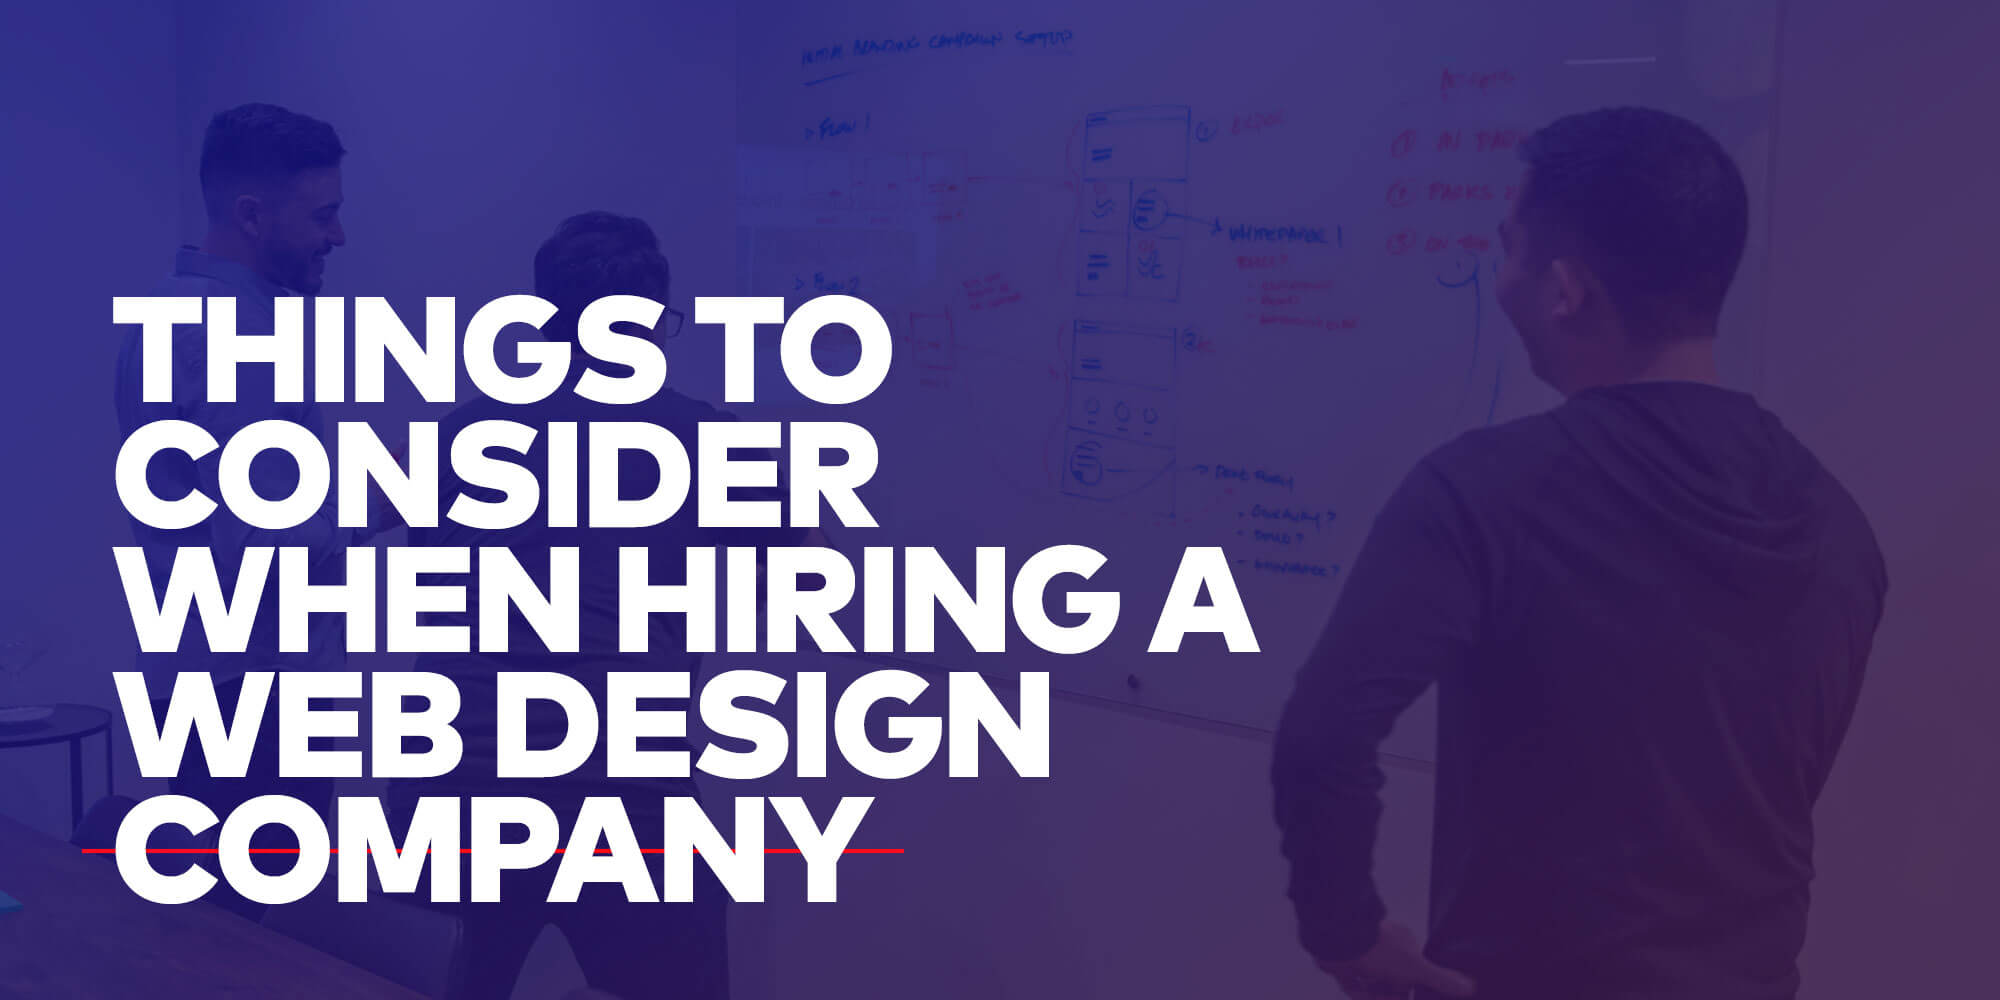 Blog: Things To Consider When Hiring a Web Design Company